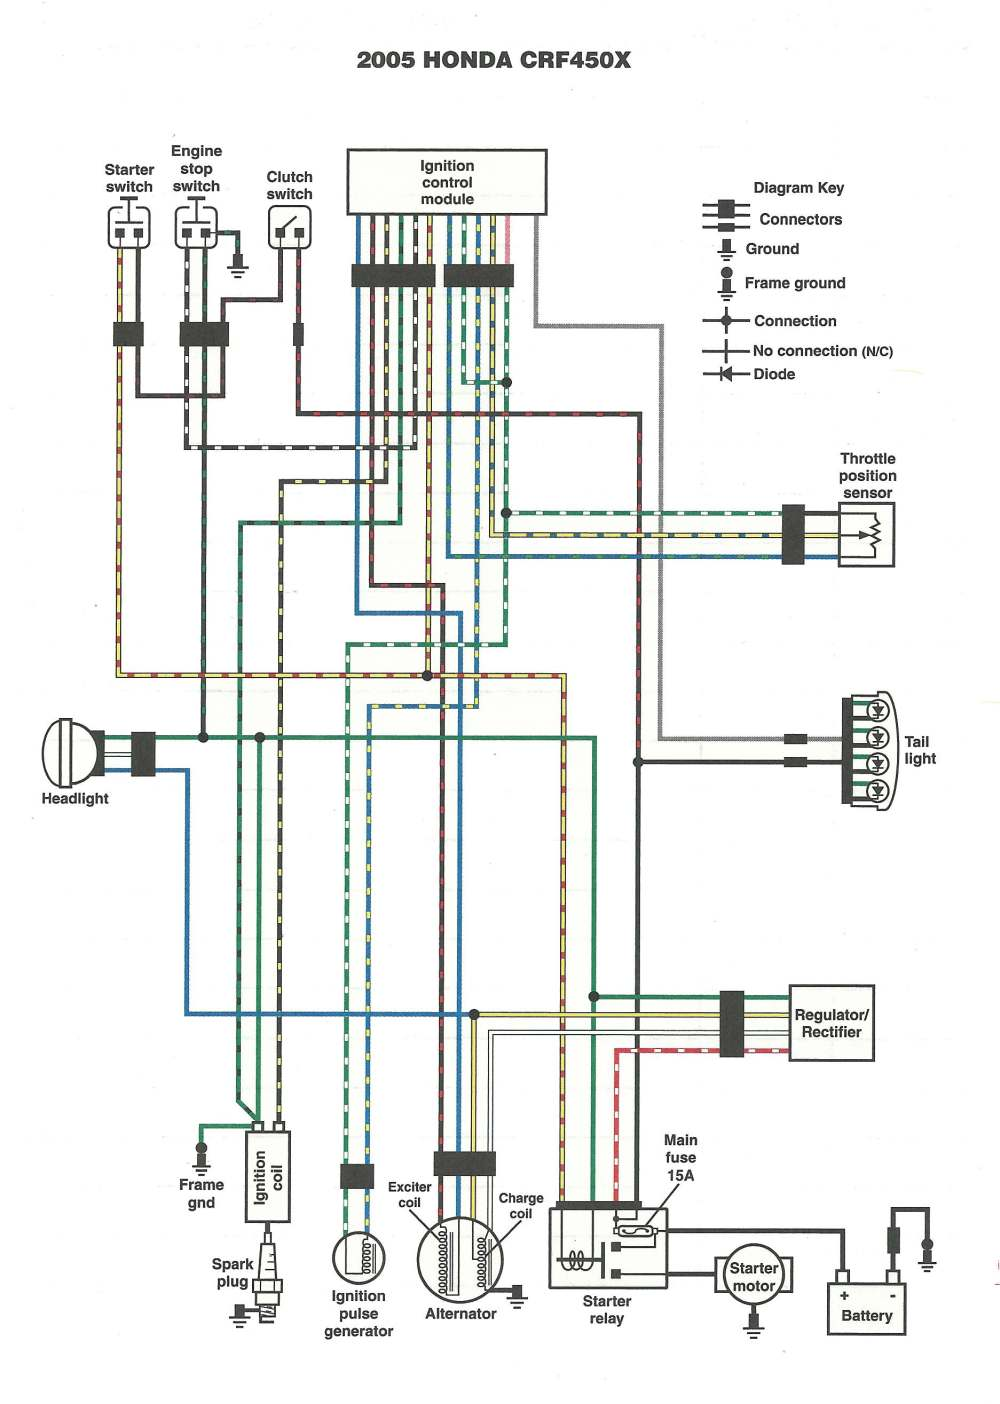 medium resolution of d61 wiring diagram wiring diagram todayd61 wiring diagram wiring diagrams wni d61 wiring diagram